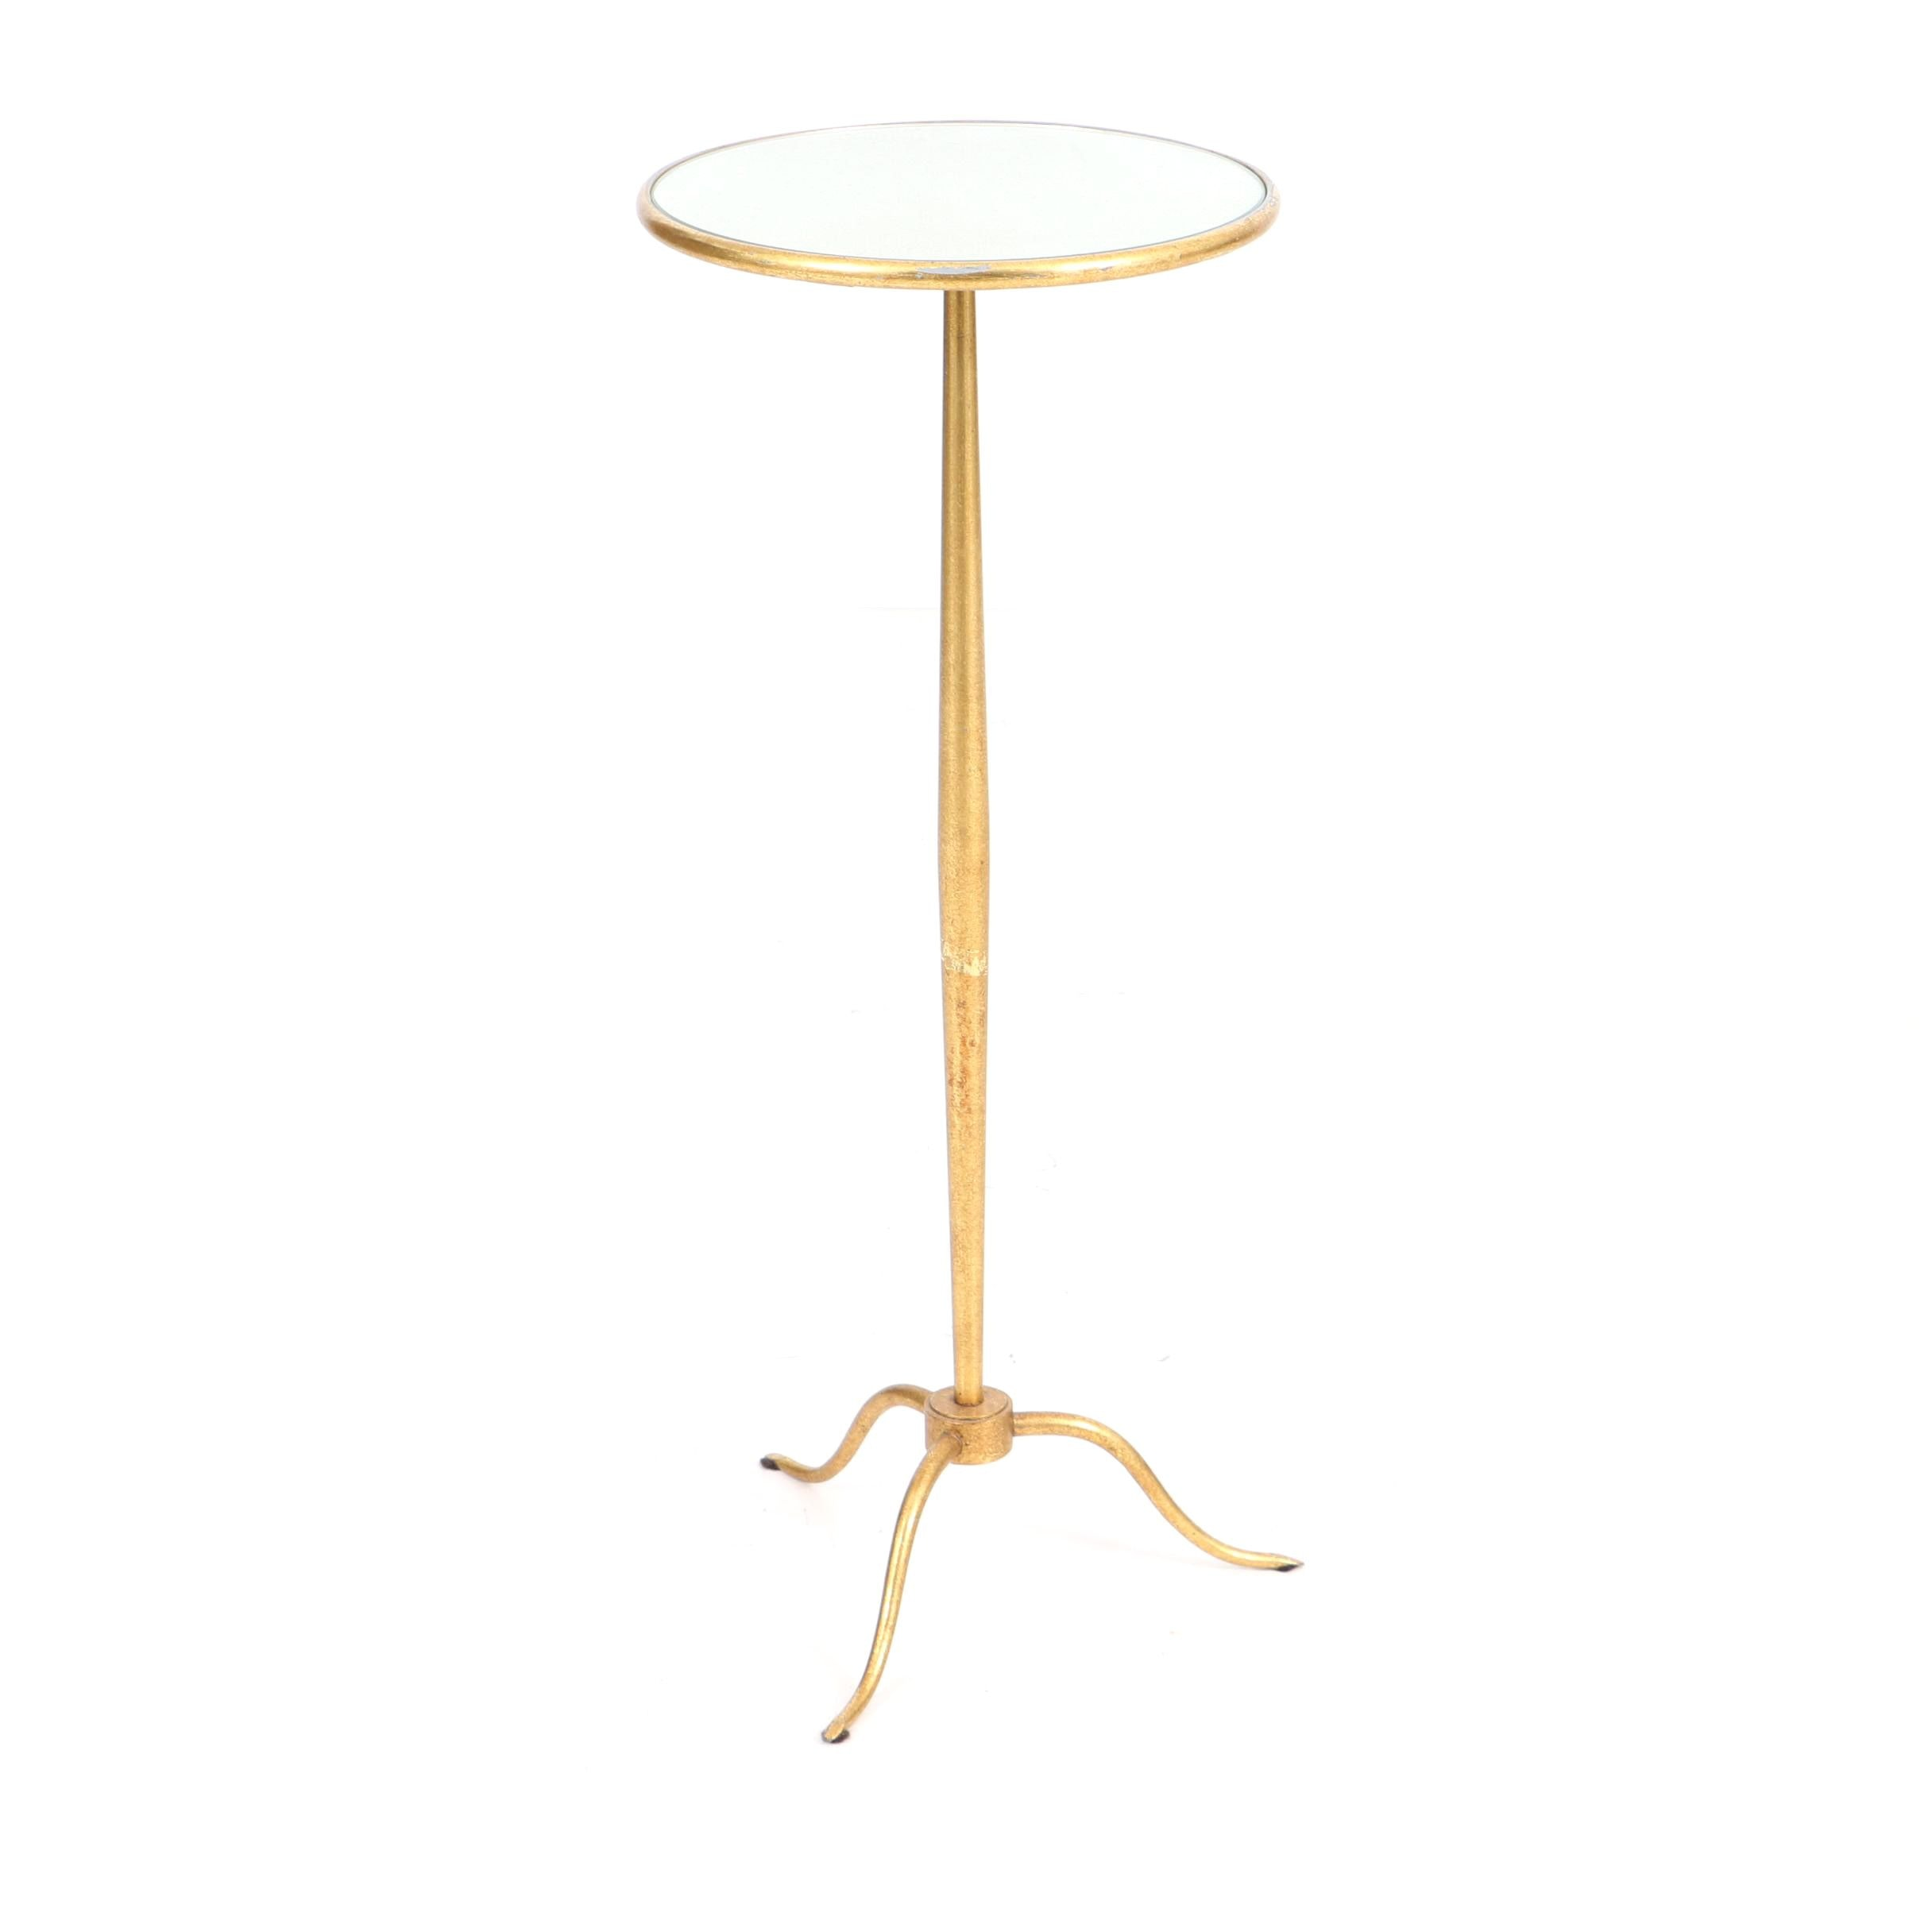 Gold Metal Accent Table with Mirrored Top